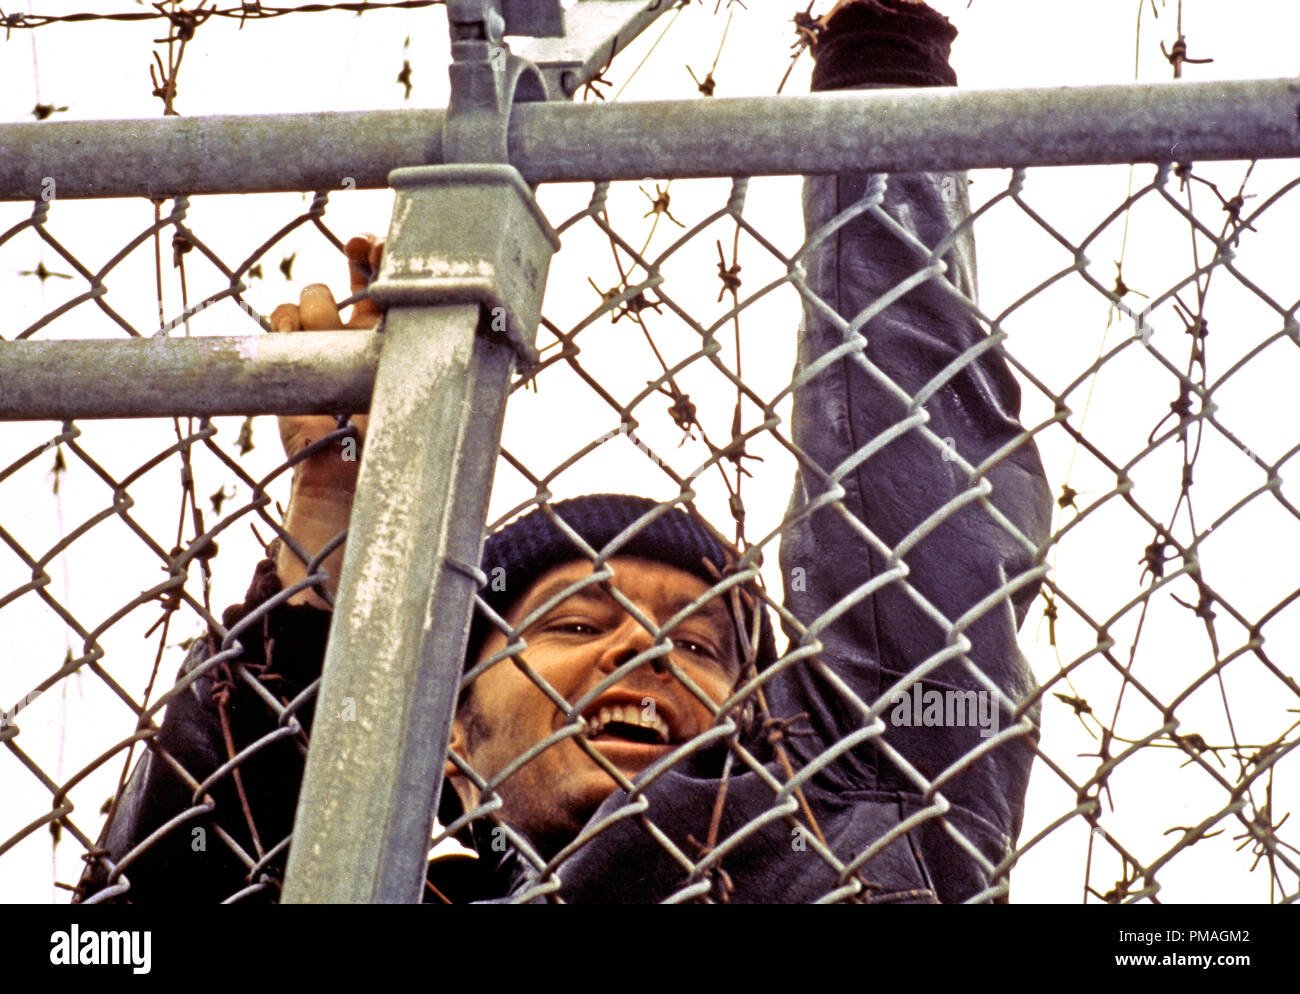 Jack Nicholson,'One Flew Over the Cuckoo's Nest'  1975 UA   File Reference # 32733_176THA - Stock Image